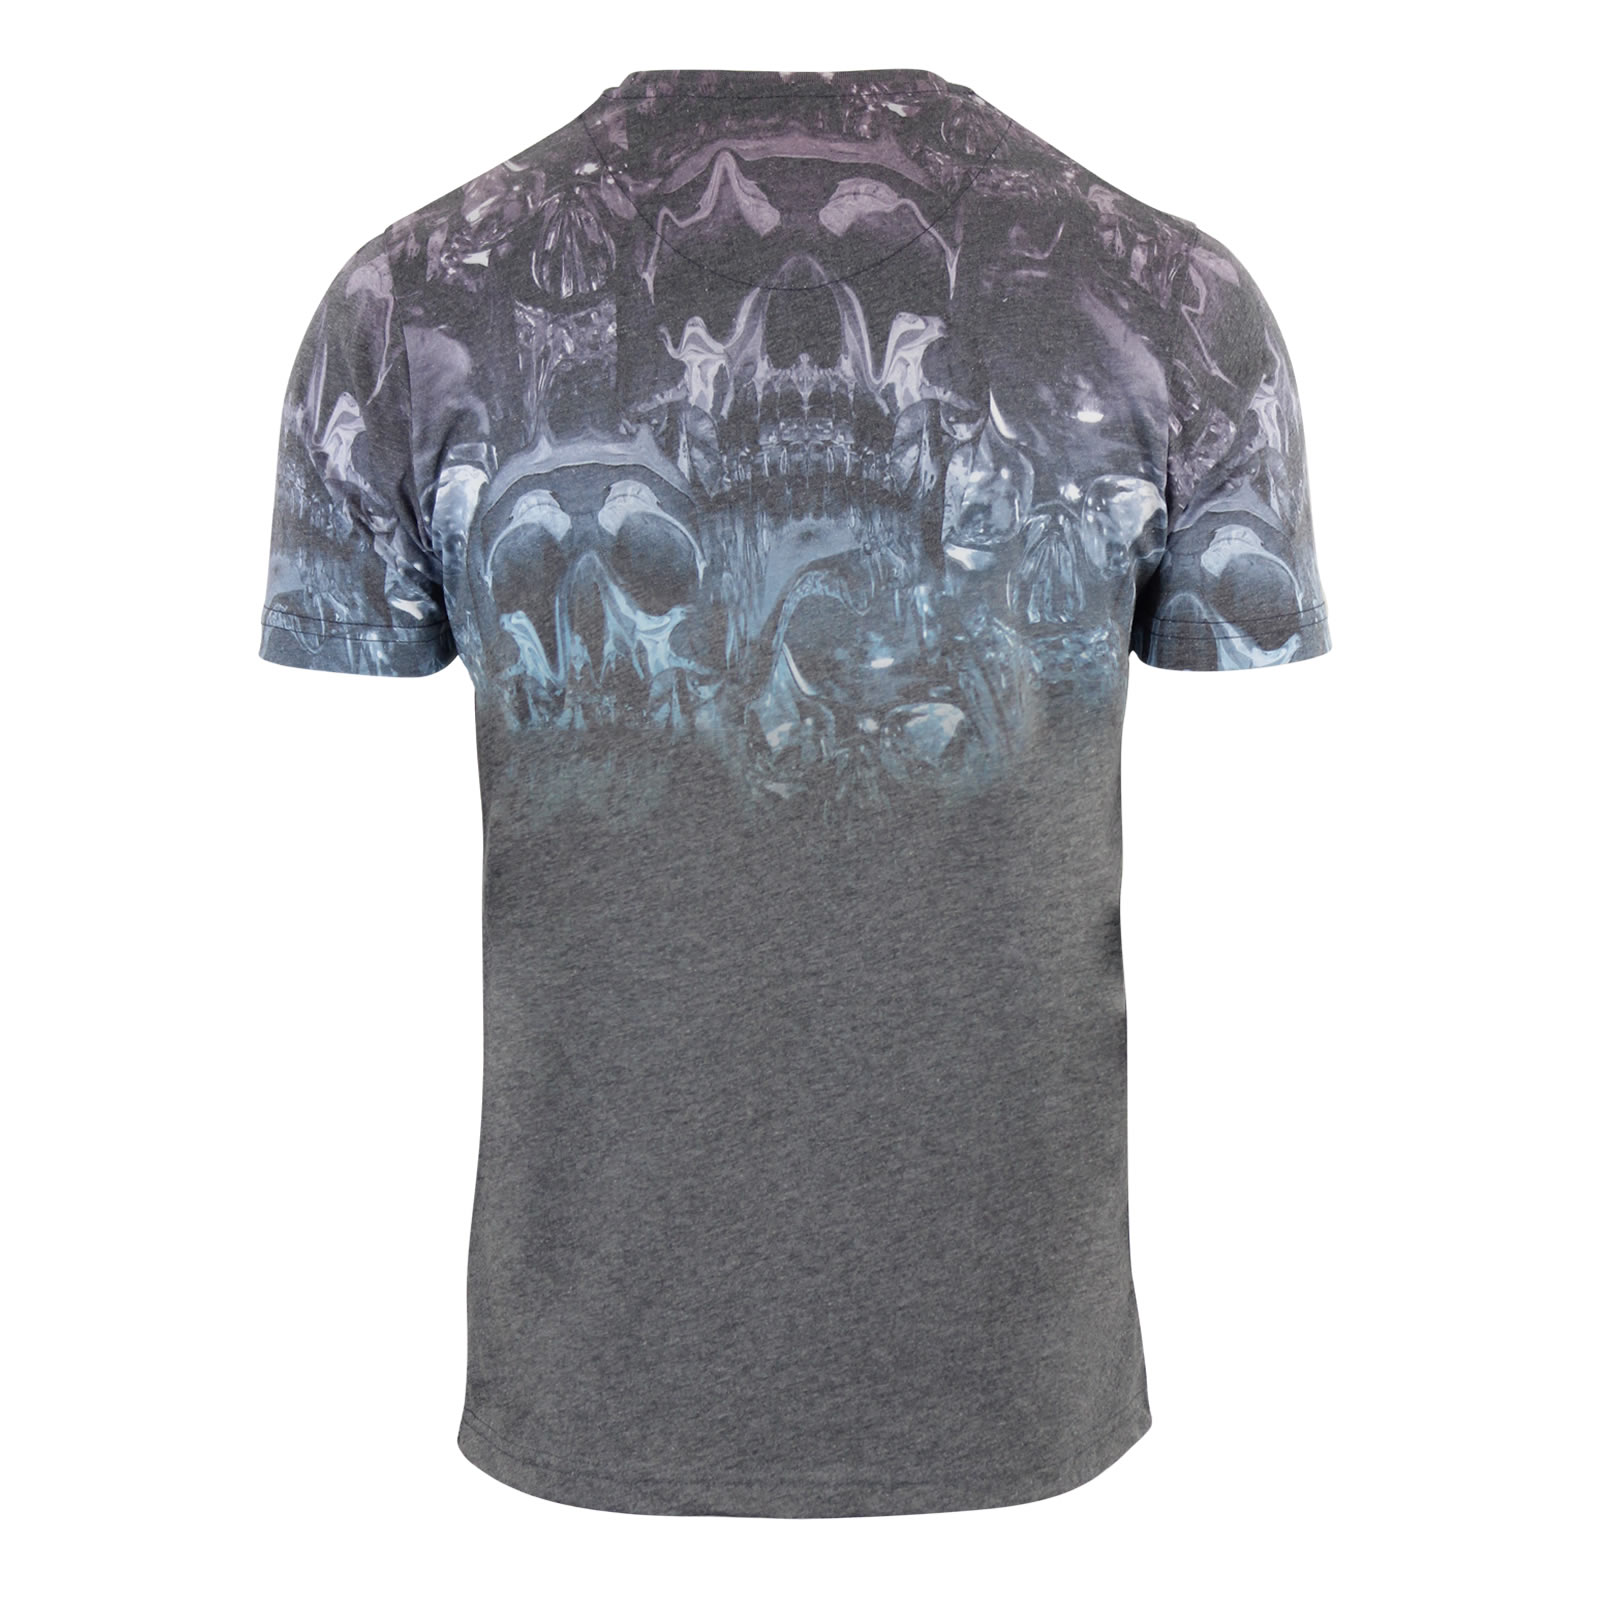 Firetrap skulpin printed graphic acid wash t shirt for Graphic t shirt printing company